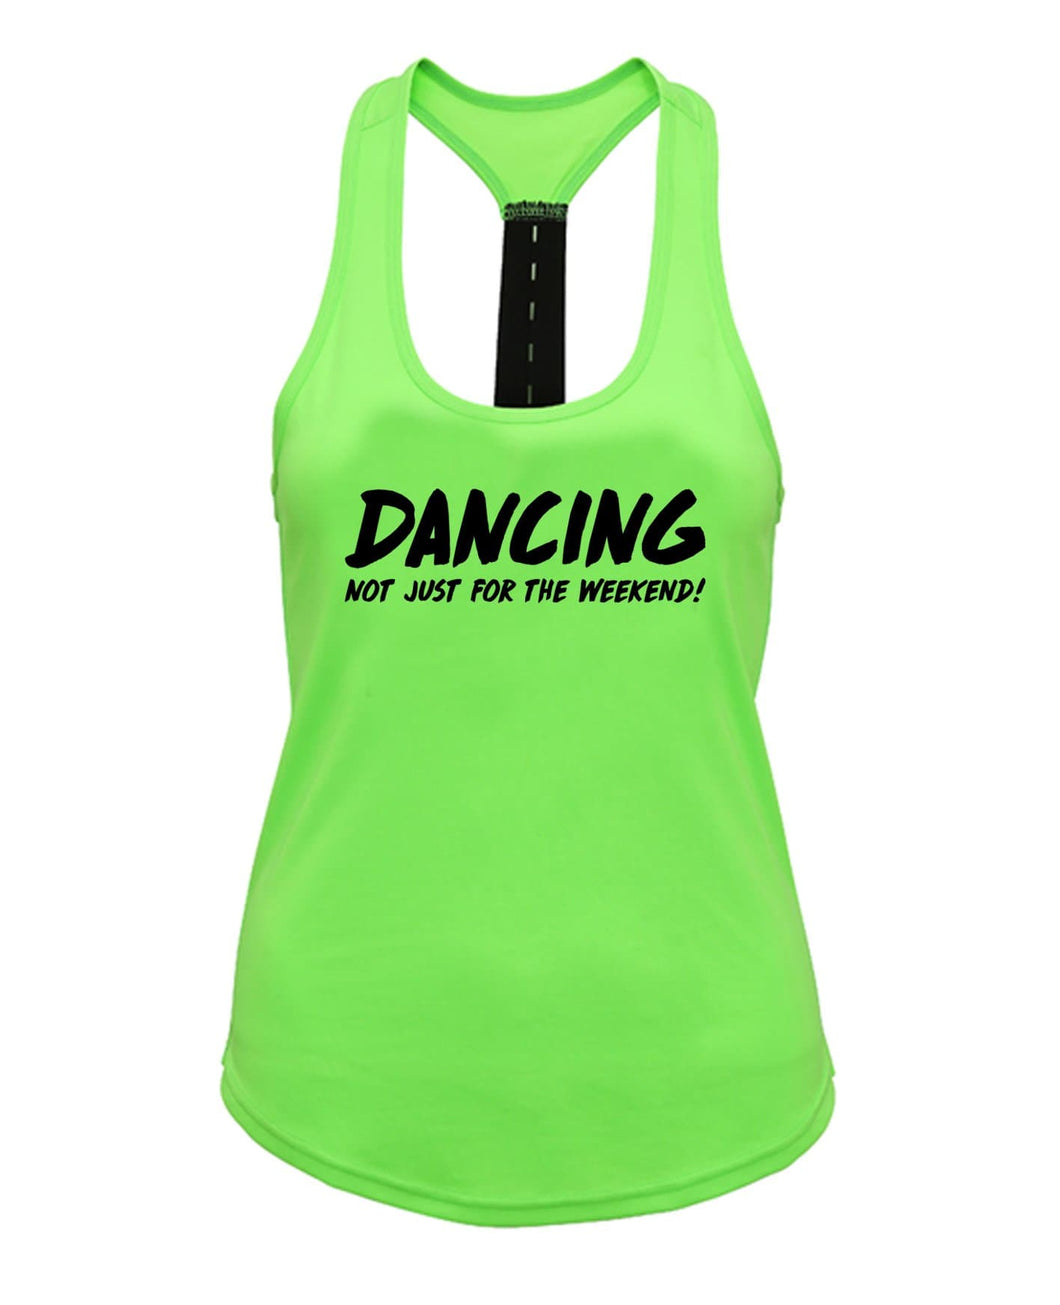 DANCING Not just for the weekend! - Strapback *NEON* - SoreTodayStrongTomorrow